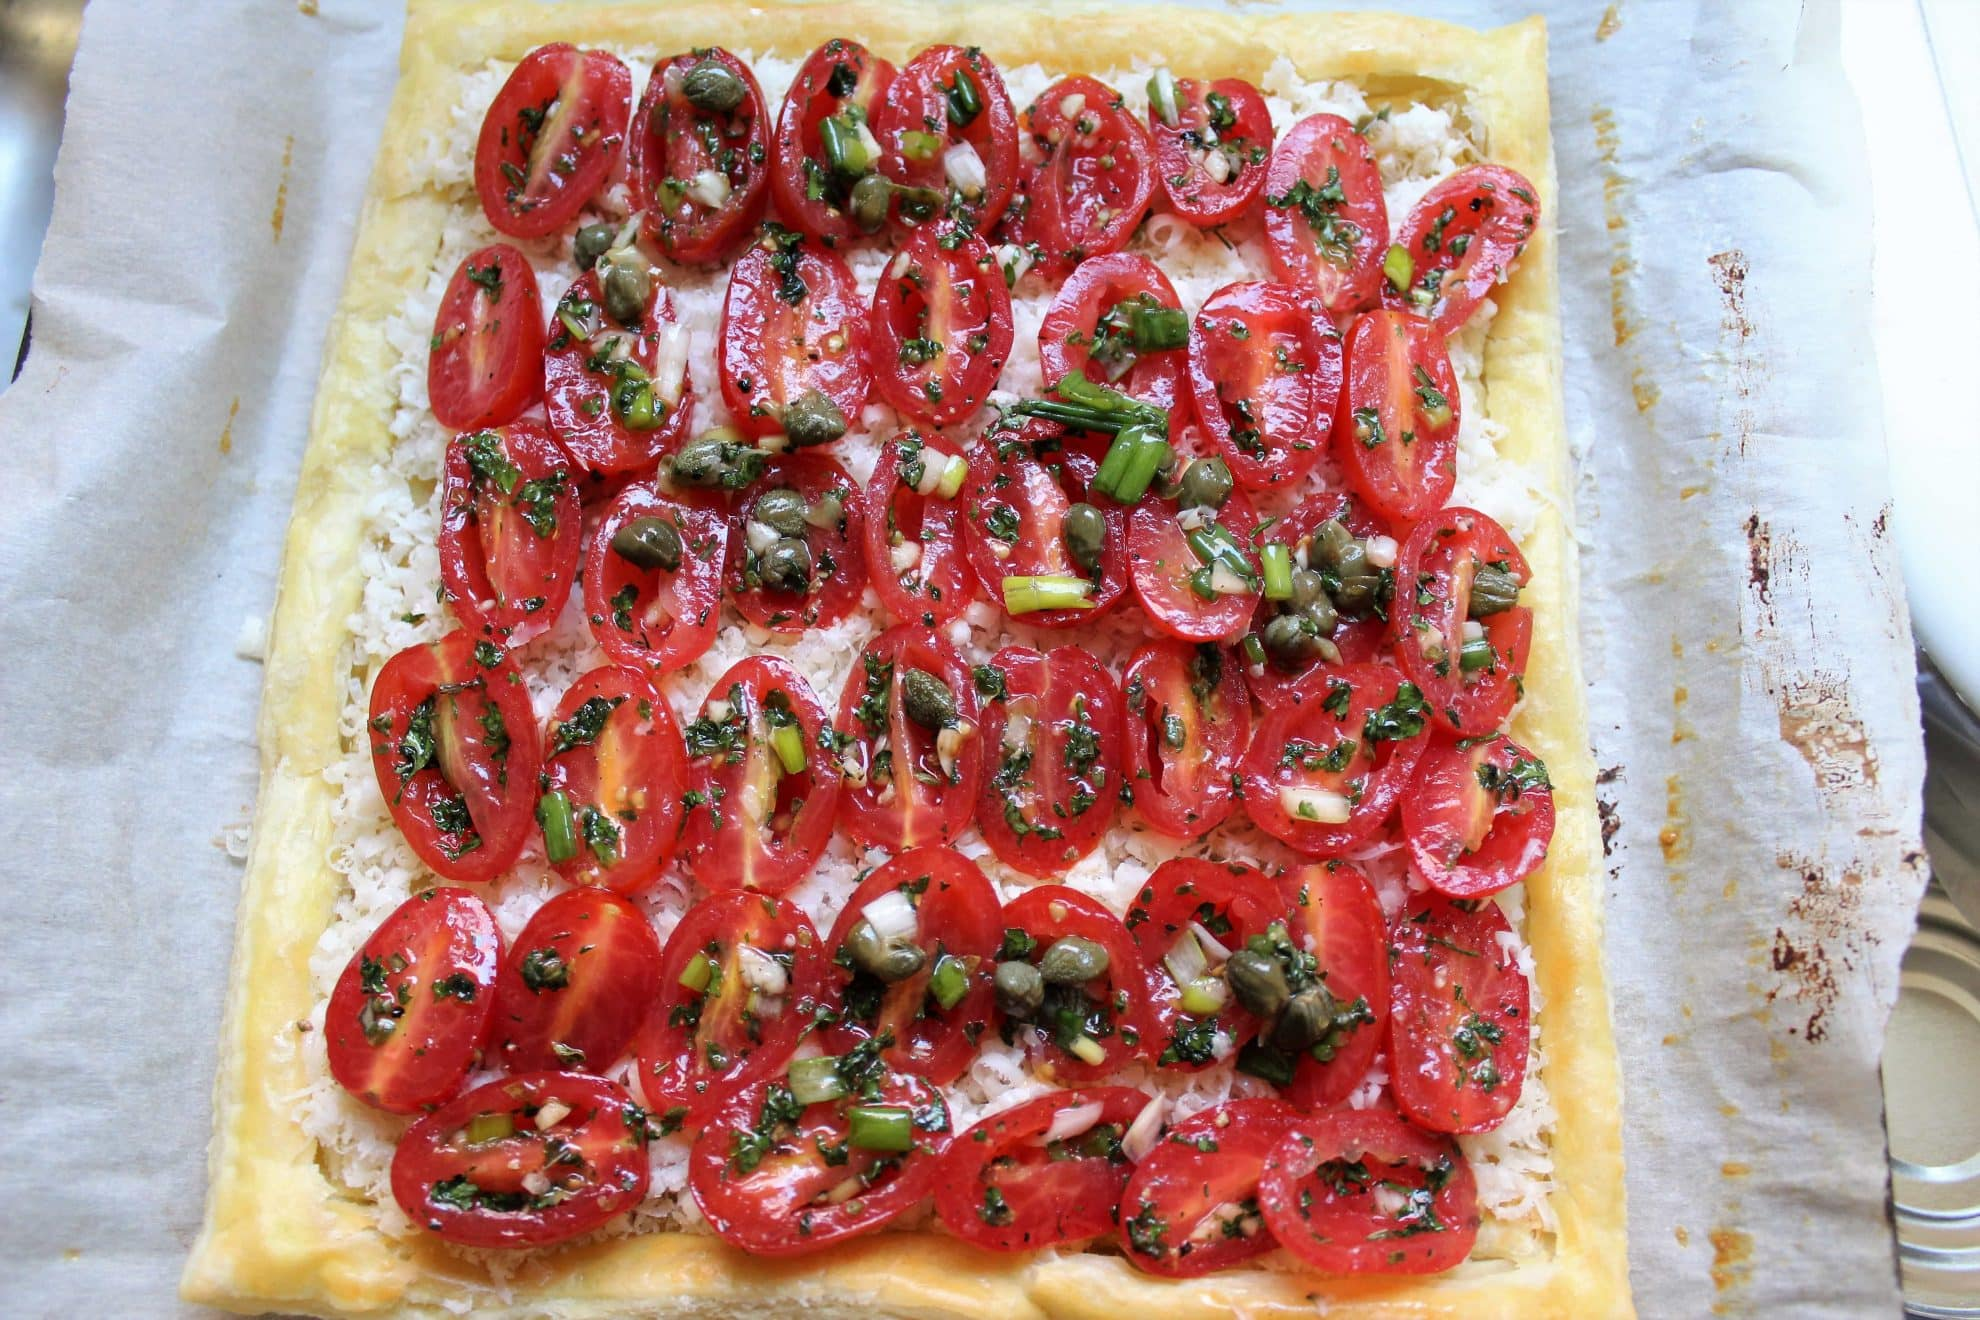 herb tomatoes laid over puff pastry in pan